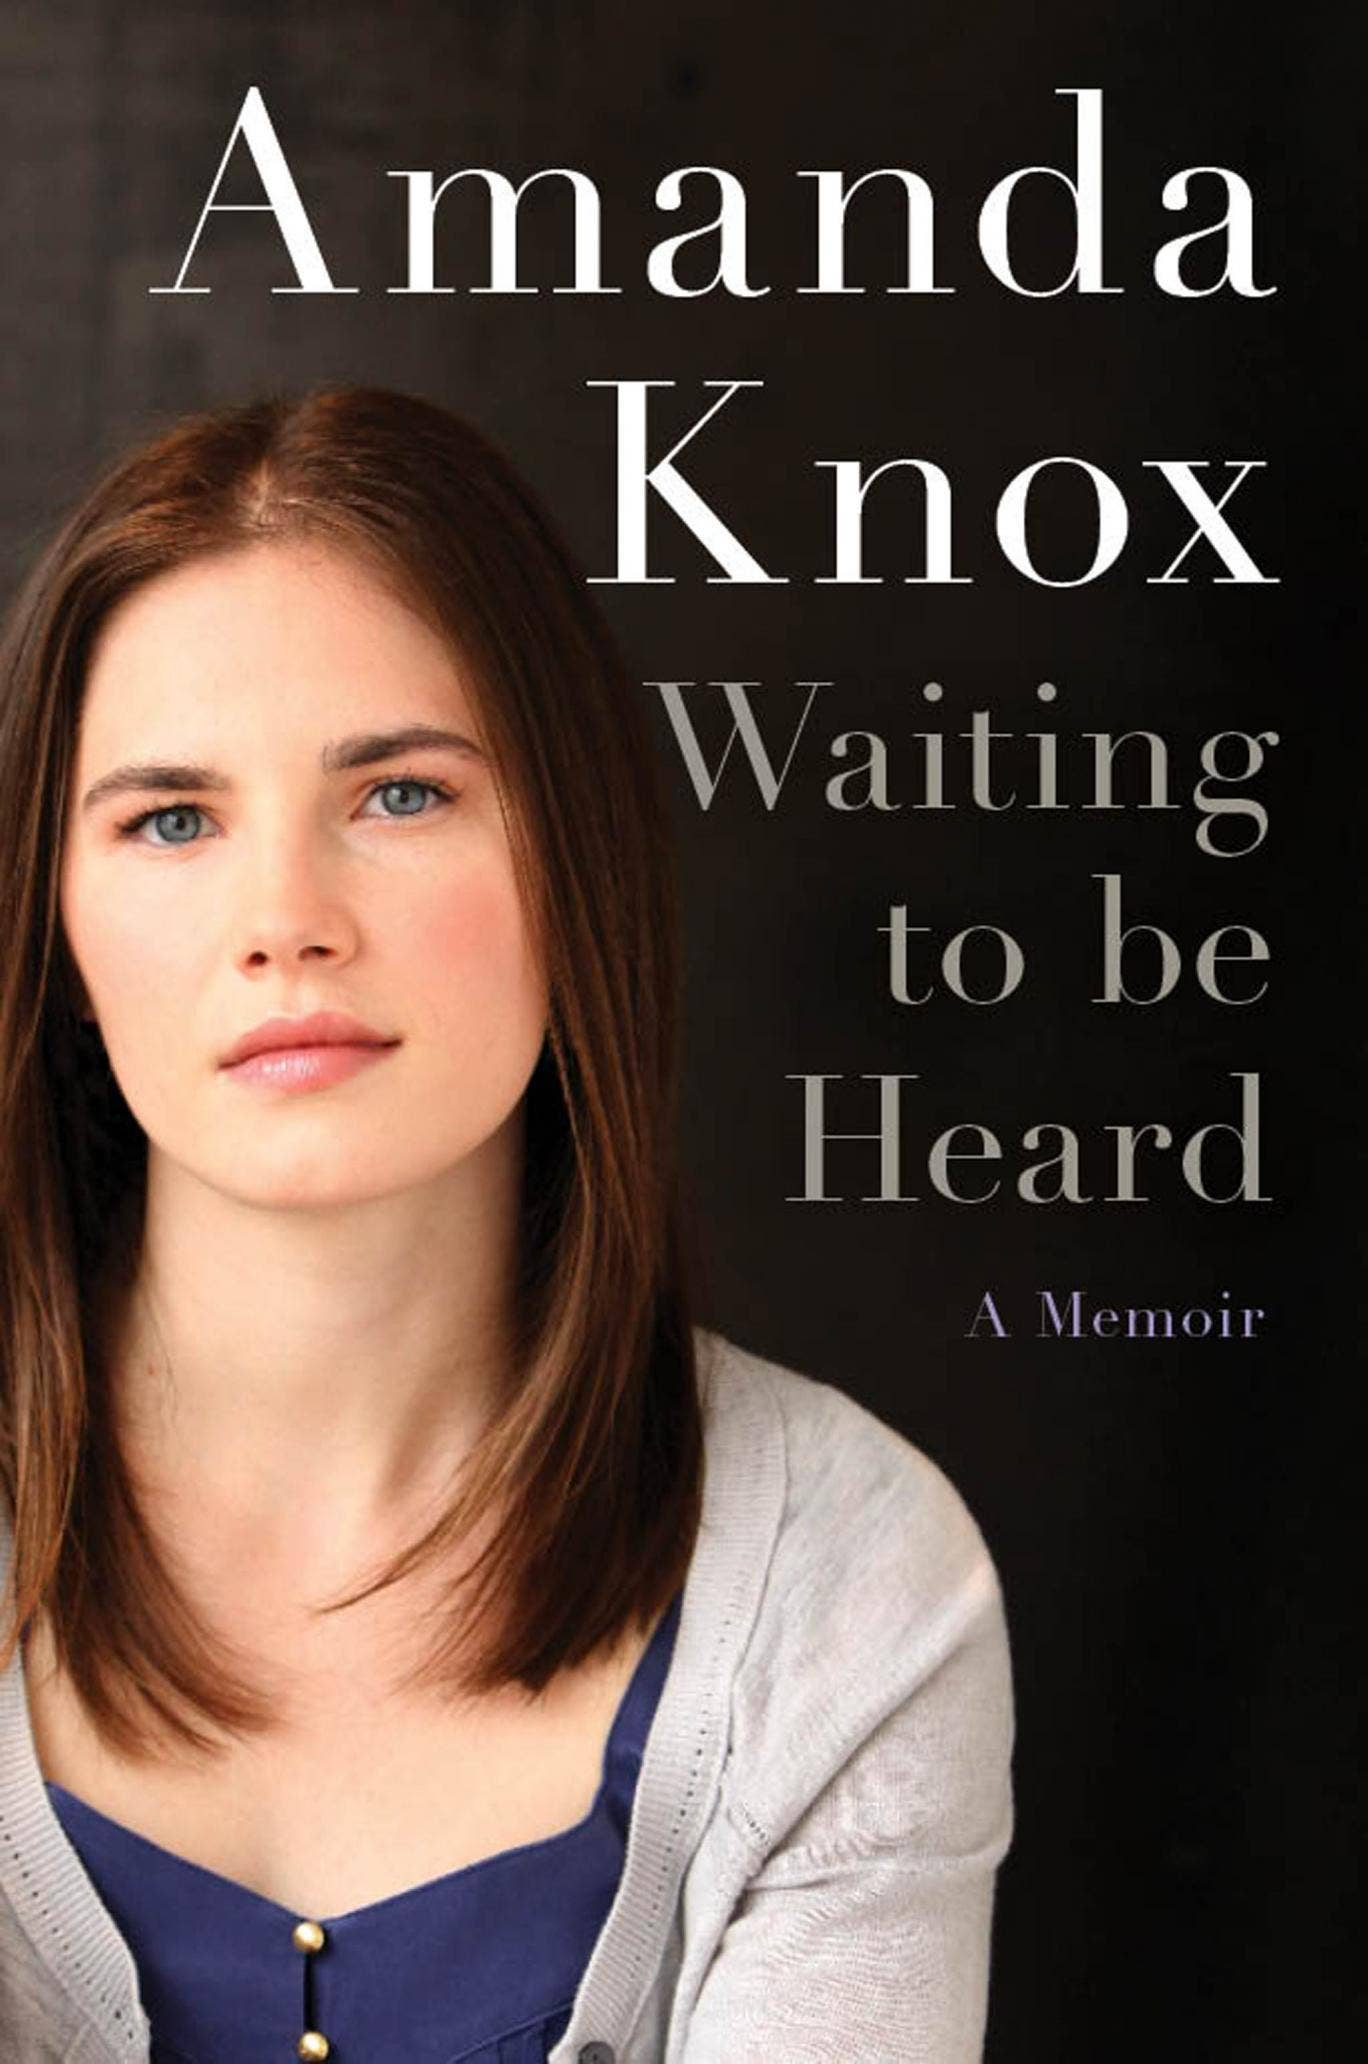 Amanda Knox's memoir 'Waiting to be Heard' will be published in April despite her retrial